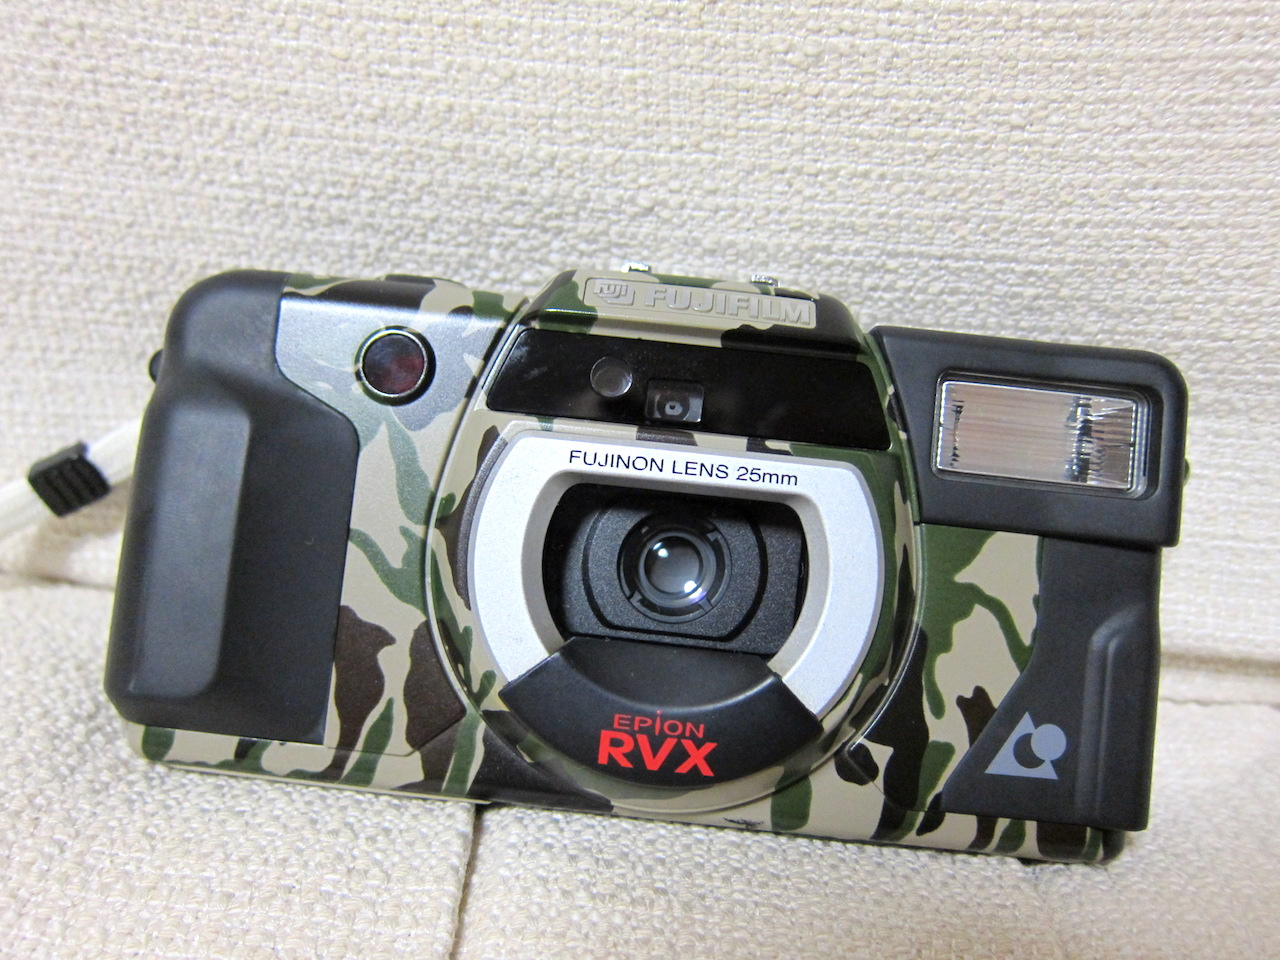 Fujifilm Epion RVX (APS)